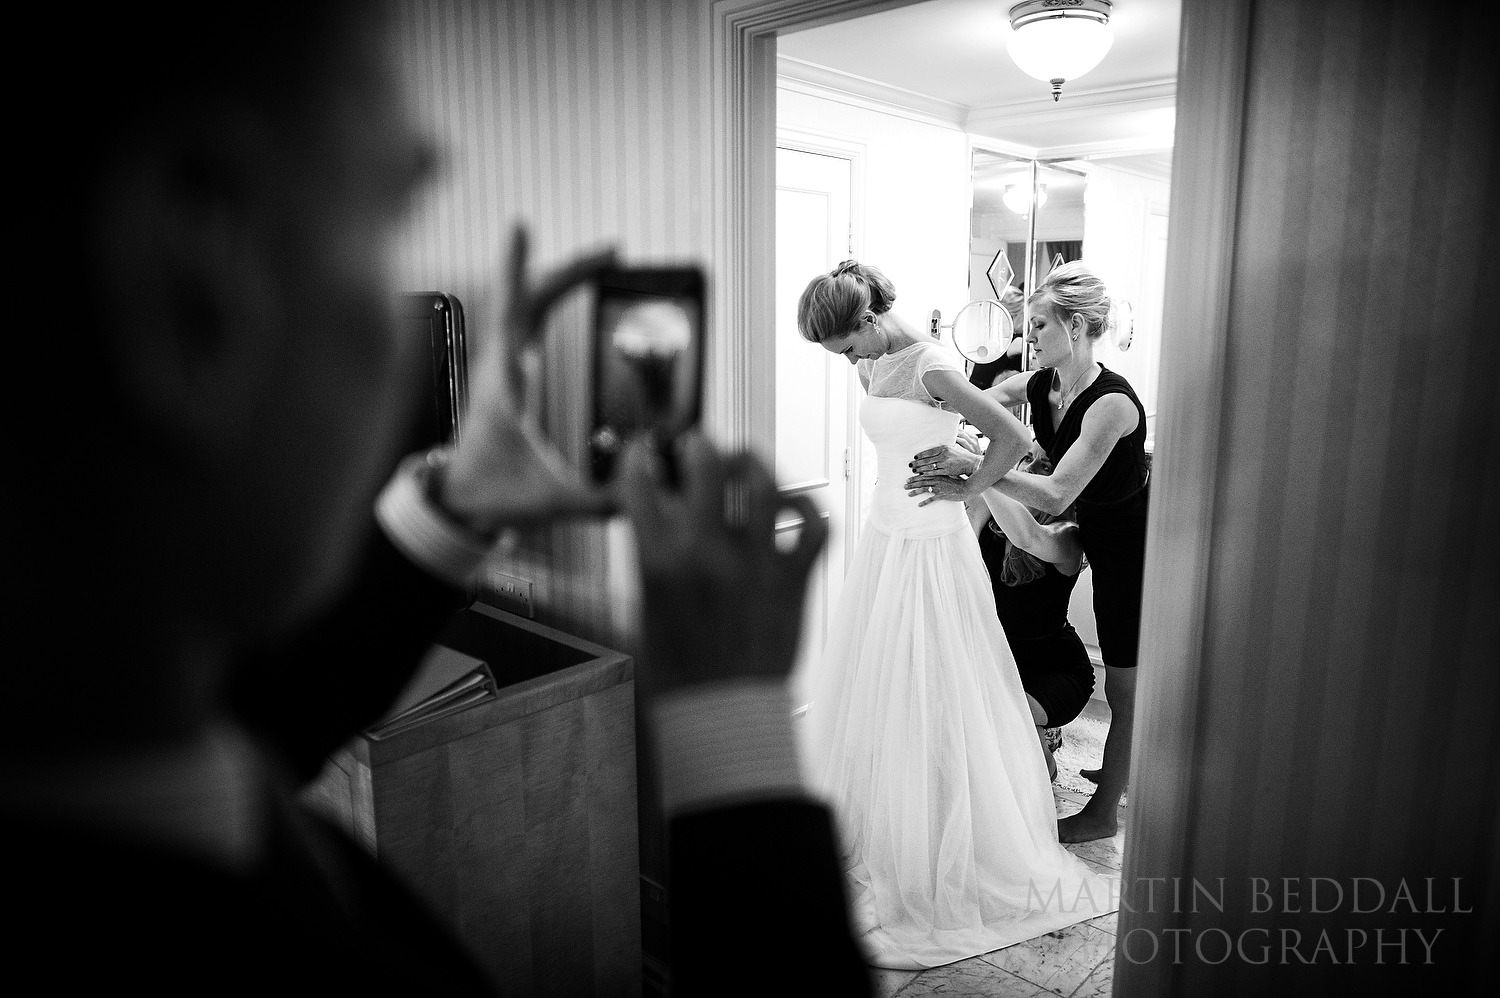 Filming the wedding dress going on